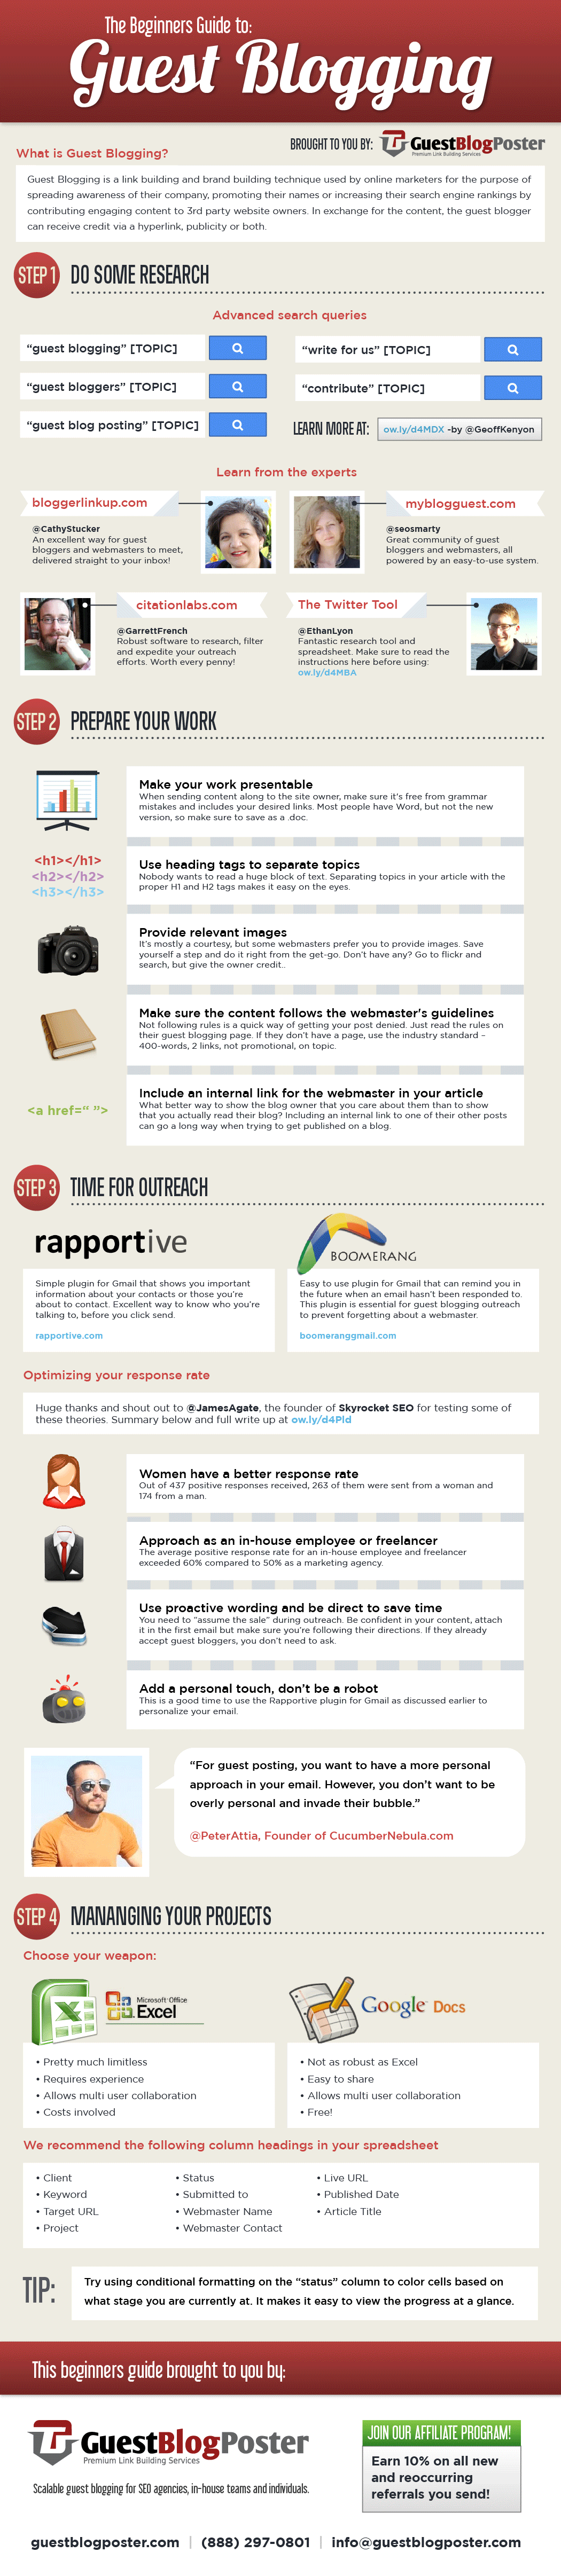 Guest Blogging Guide-Infographic